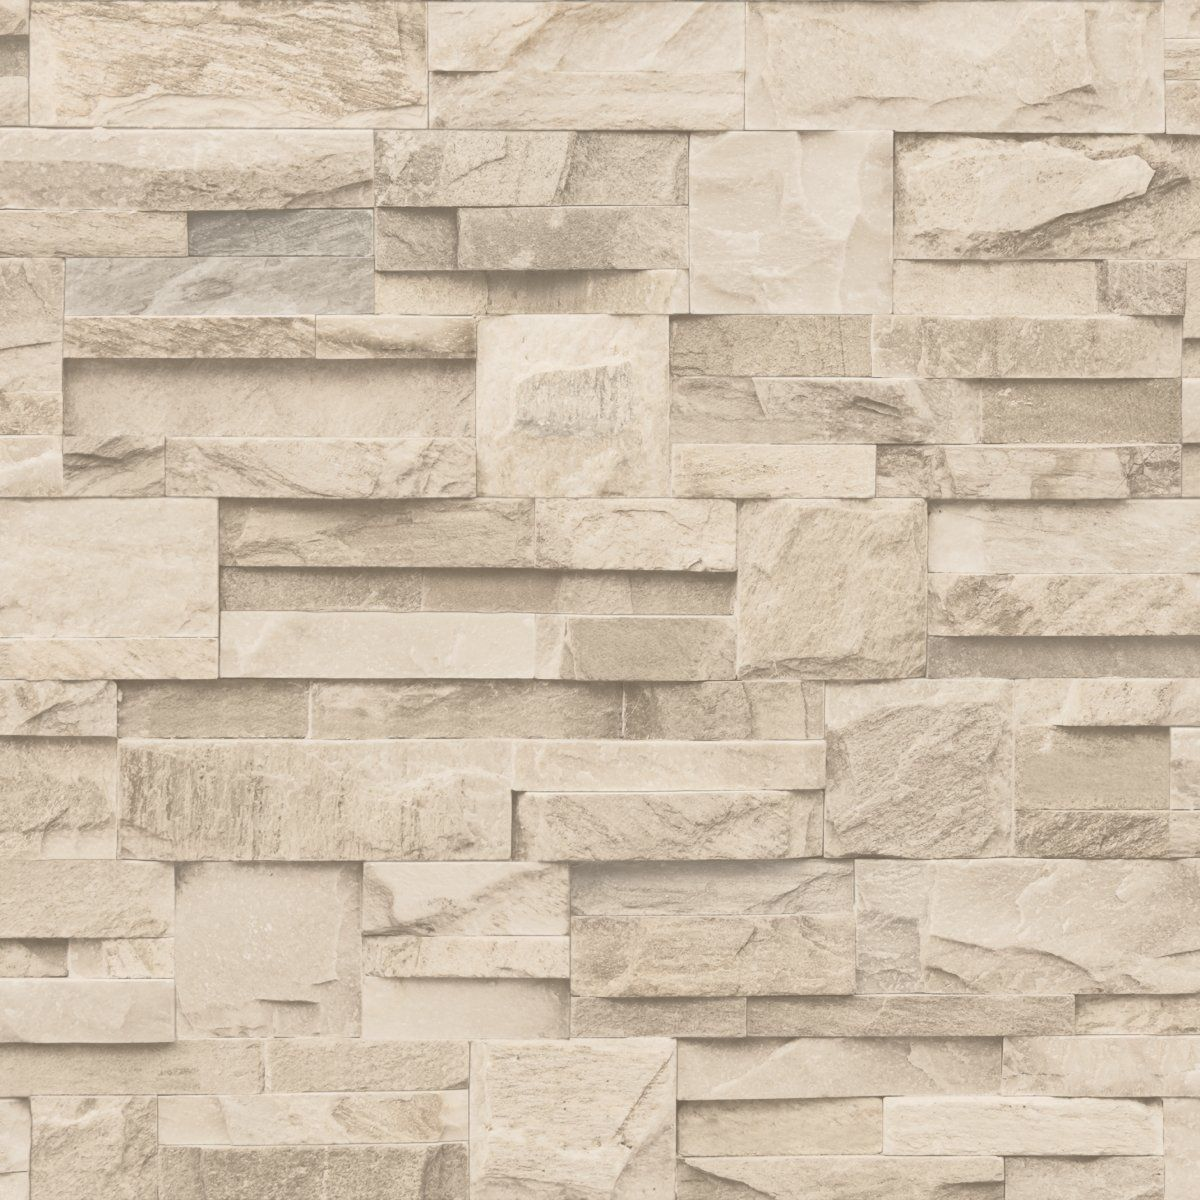 Textured Brick Wallpaper Uk Part - 22: NEW LUXURY MURIVA SLATE STONE BRICK WALL EFFECT TEXTURED VINYL WALLPAPER  BEIGE J27407: Amazon.